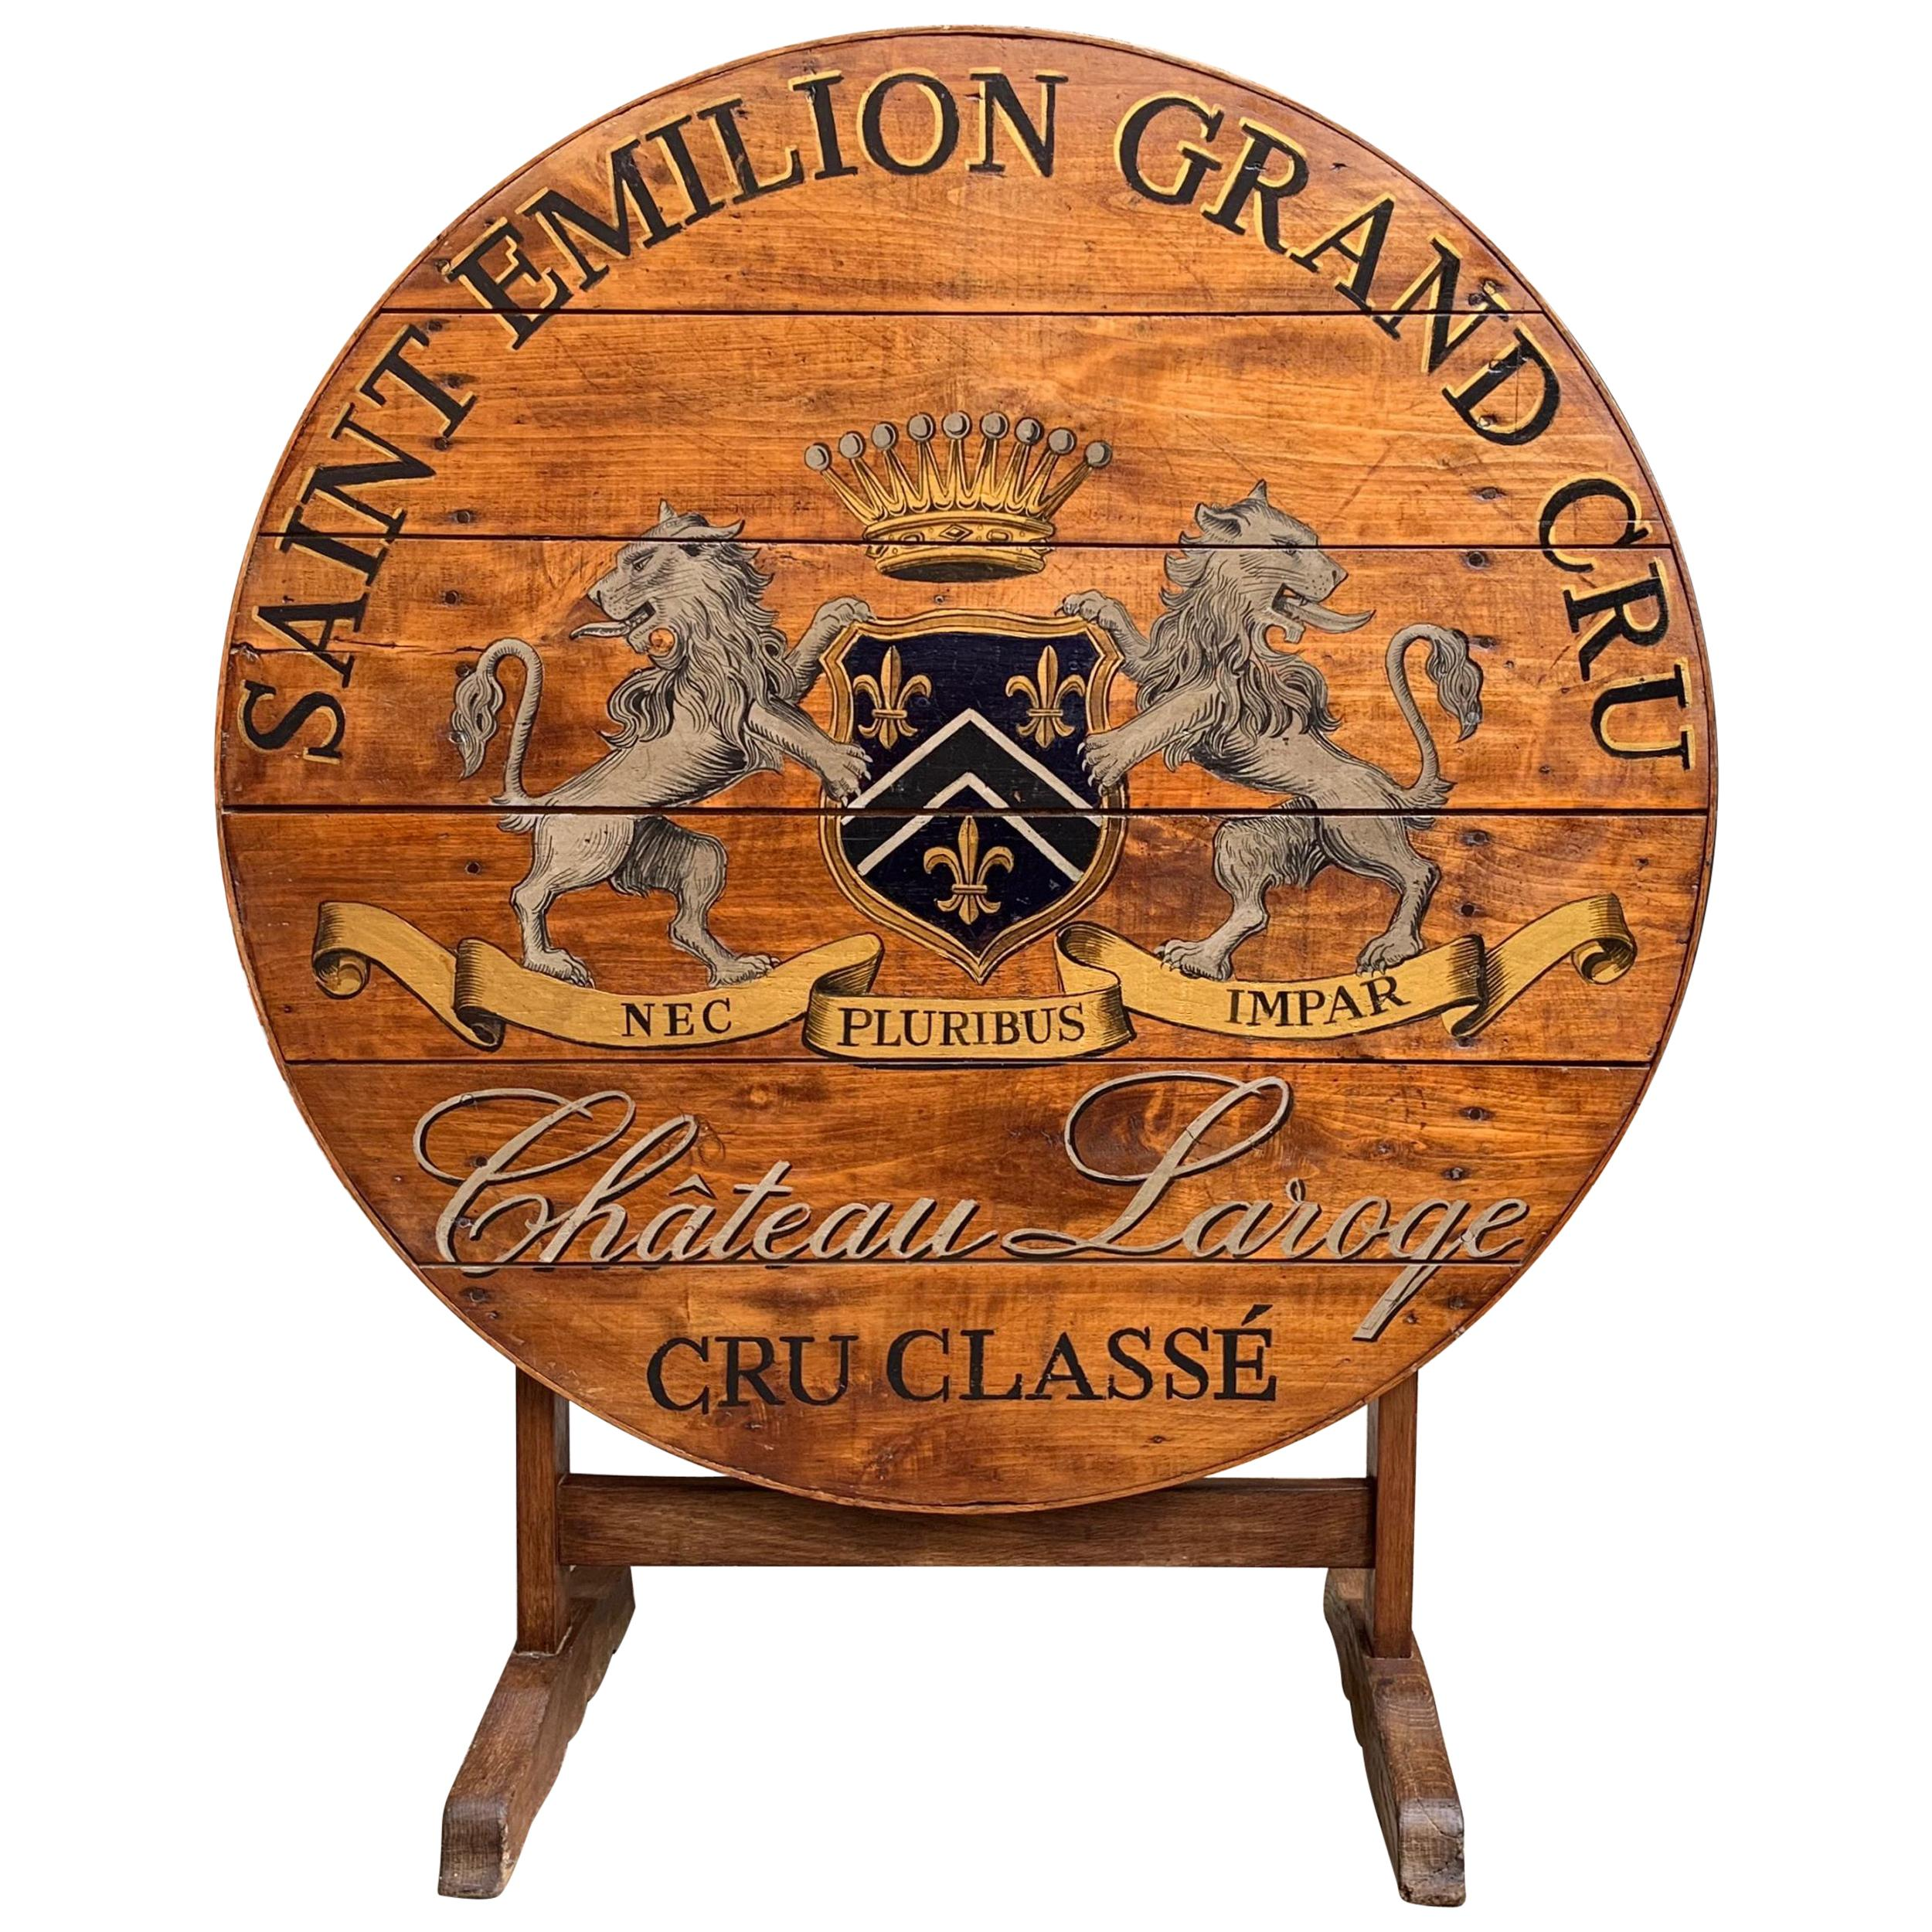 19th Century French Tilt-Top Table Wine Tasting Round Oak Hand Painted Grand Cru